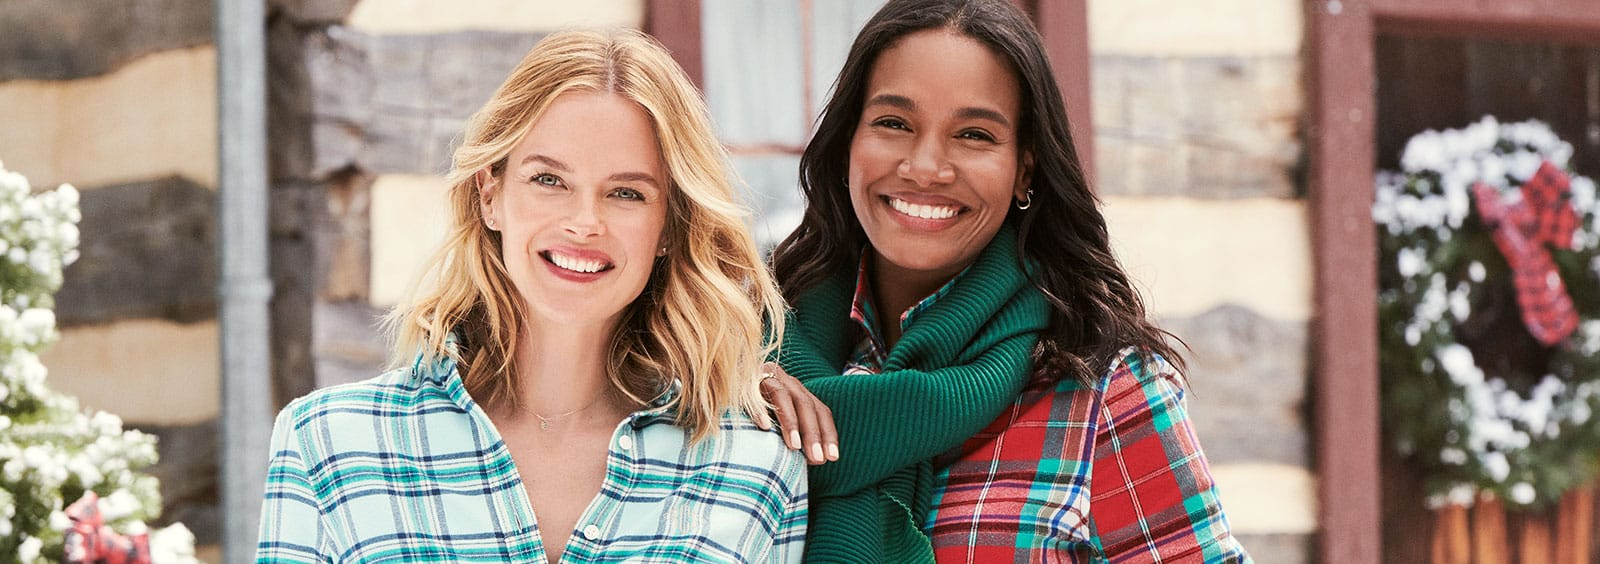 What is Flannel Lined? | Lands' End